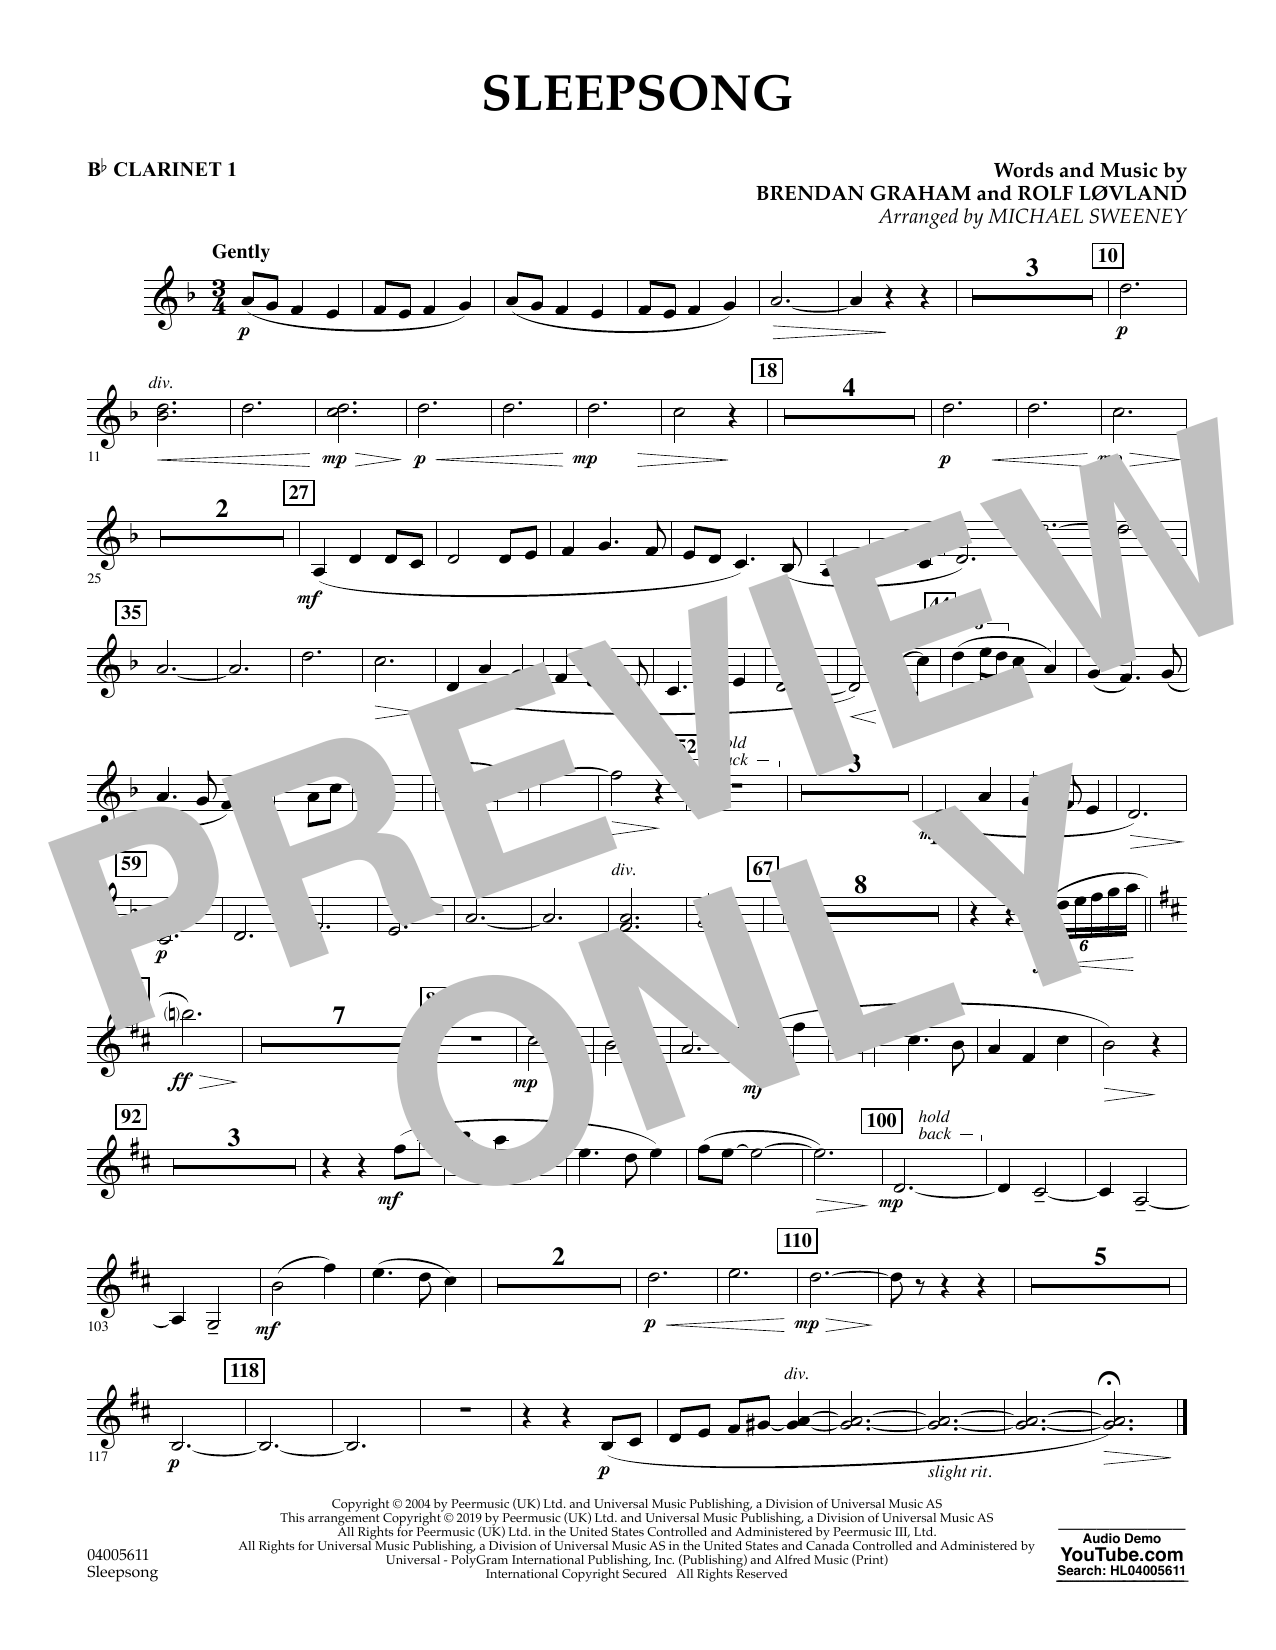 Secret Garden Sleepsong (arr. Michael Sweeney) - Bb Clarinet 1 sheet music preview music notes and score for Concert Band including 1 page(s)